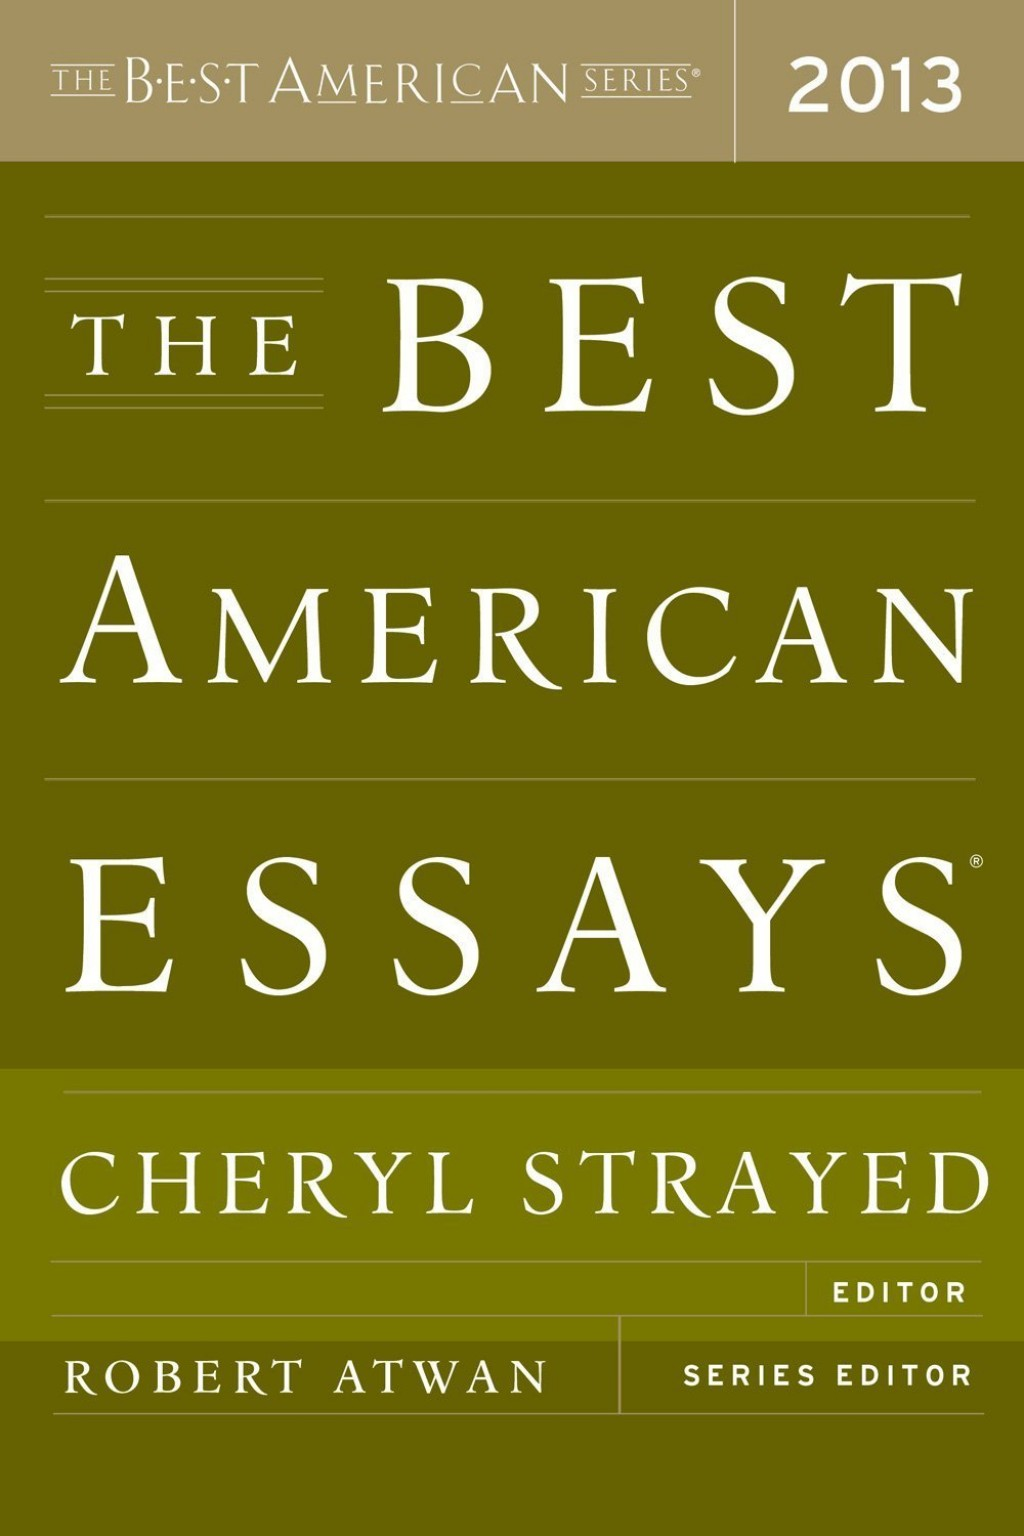 004 The Best American Essays Essay Wonderful 2013 Pdf Download Of Century Sparknotes 2017 Large